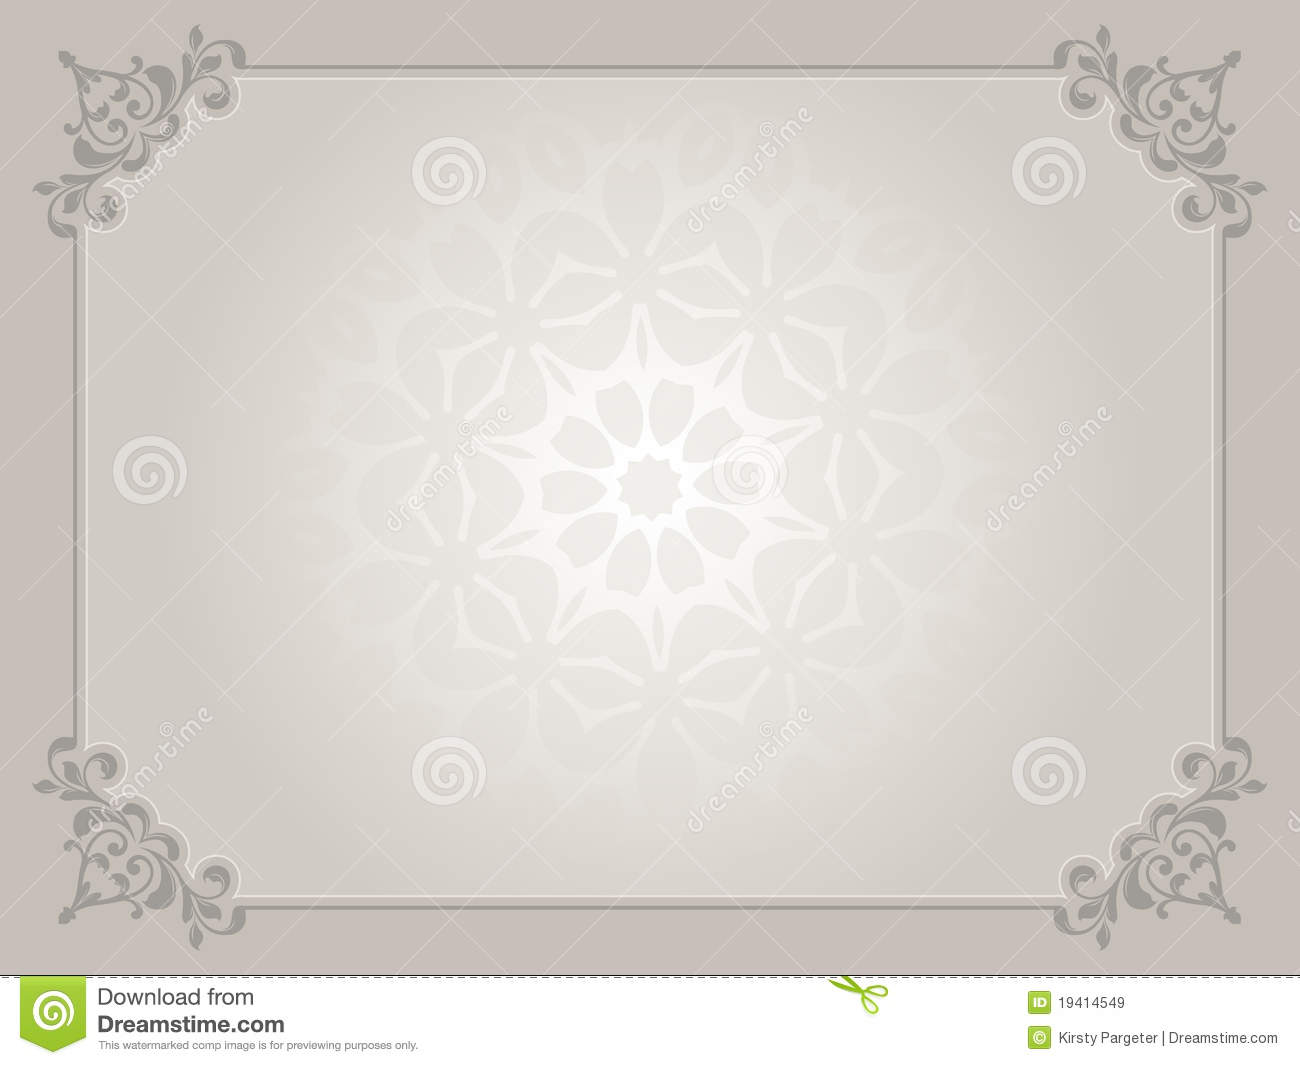 Certificate Background Royalty Free Stock Images - Image ...